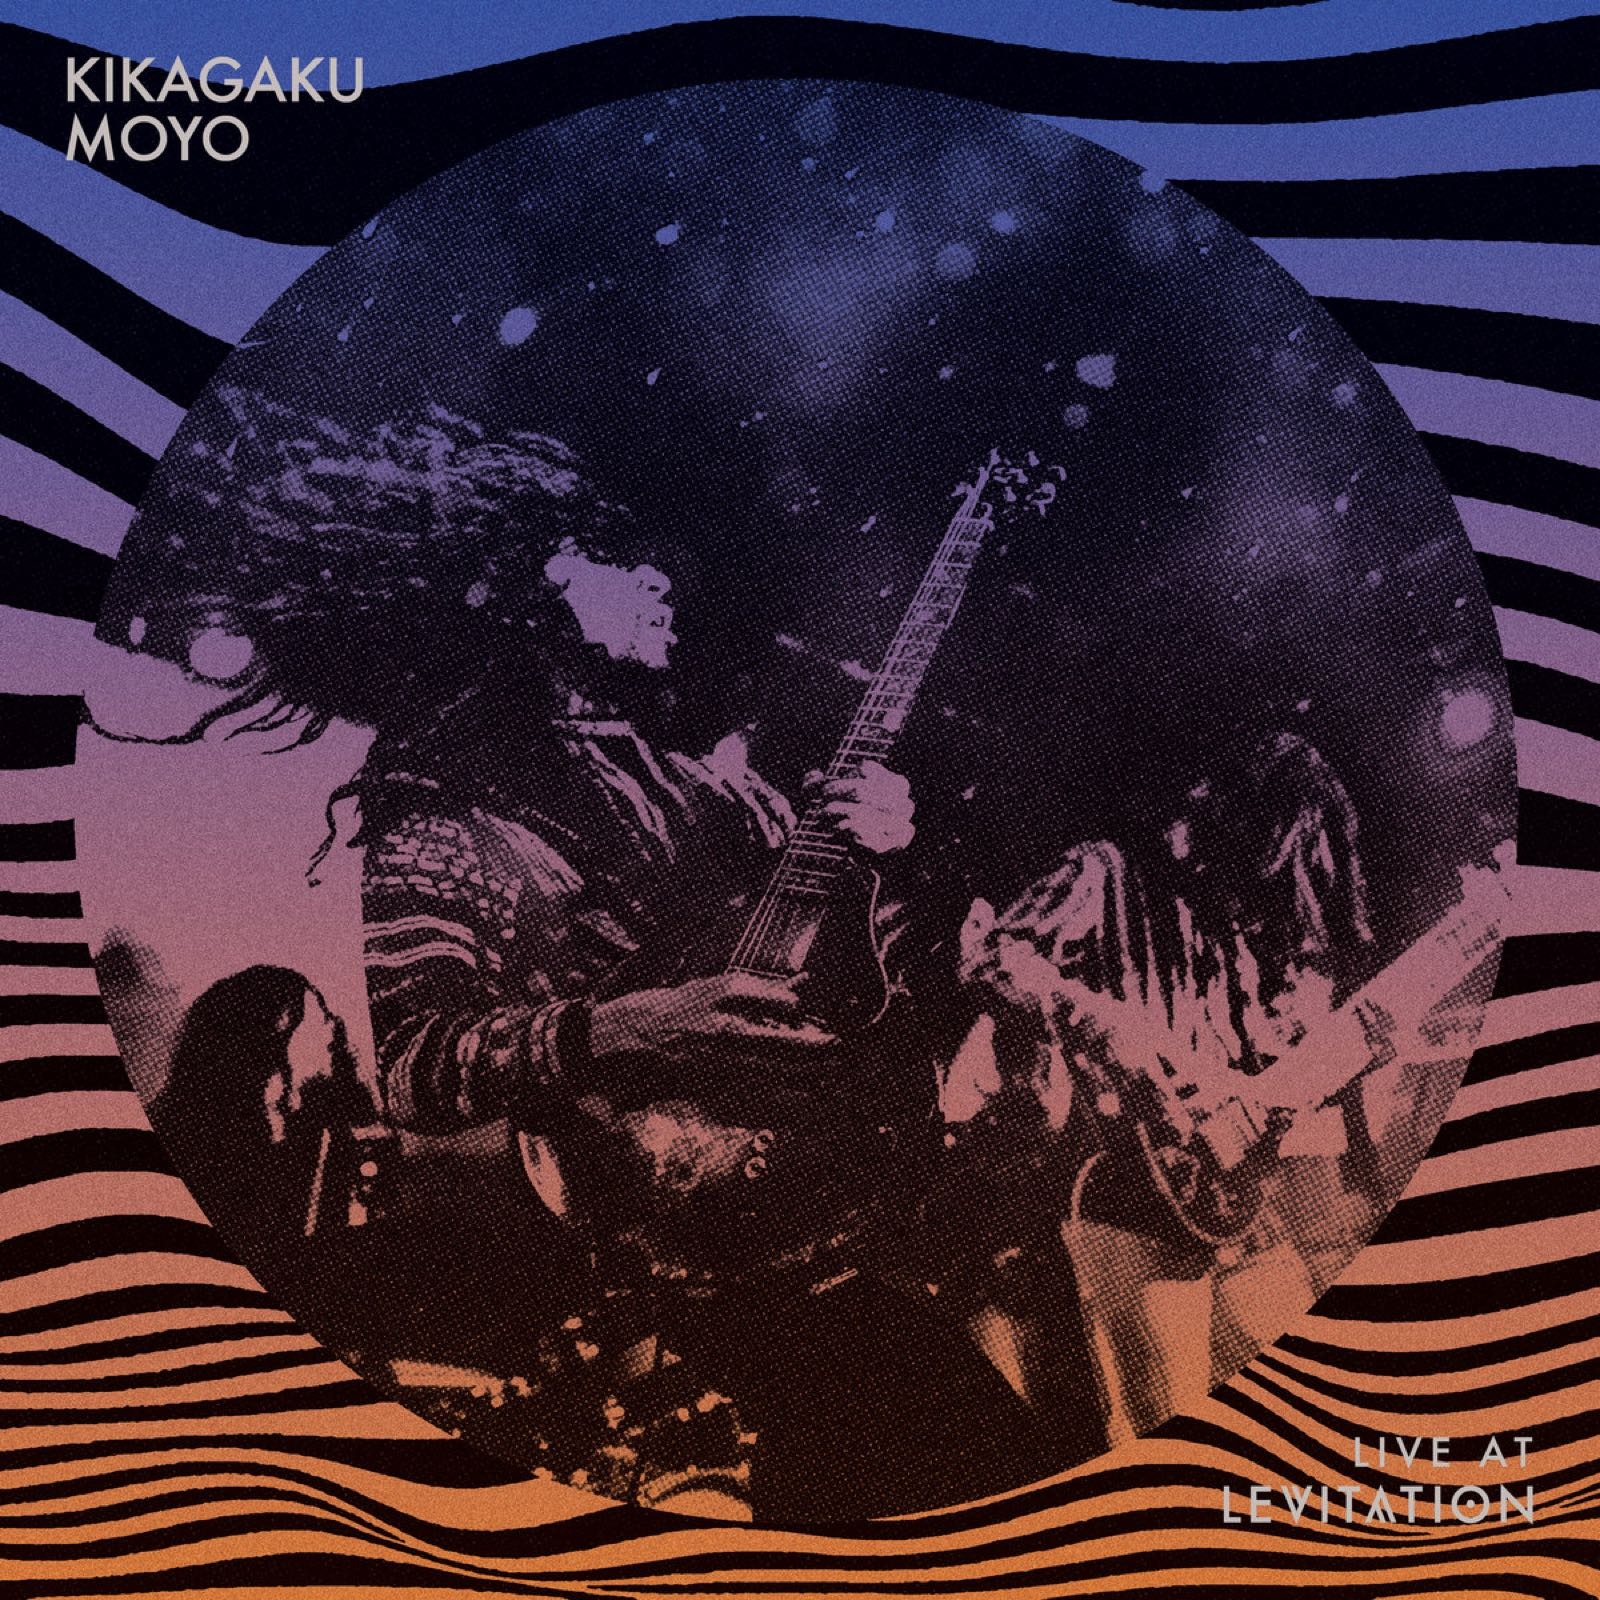 Kikagaku Moyo - Live At Levitation [LP]